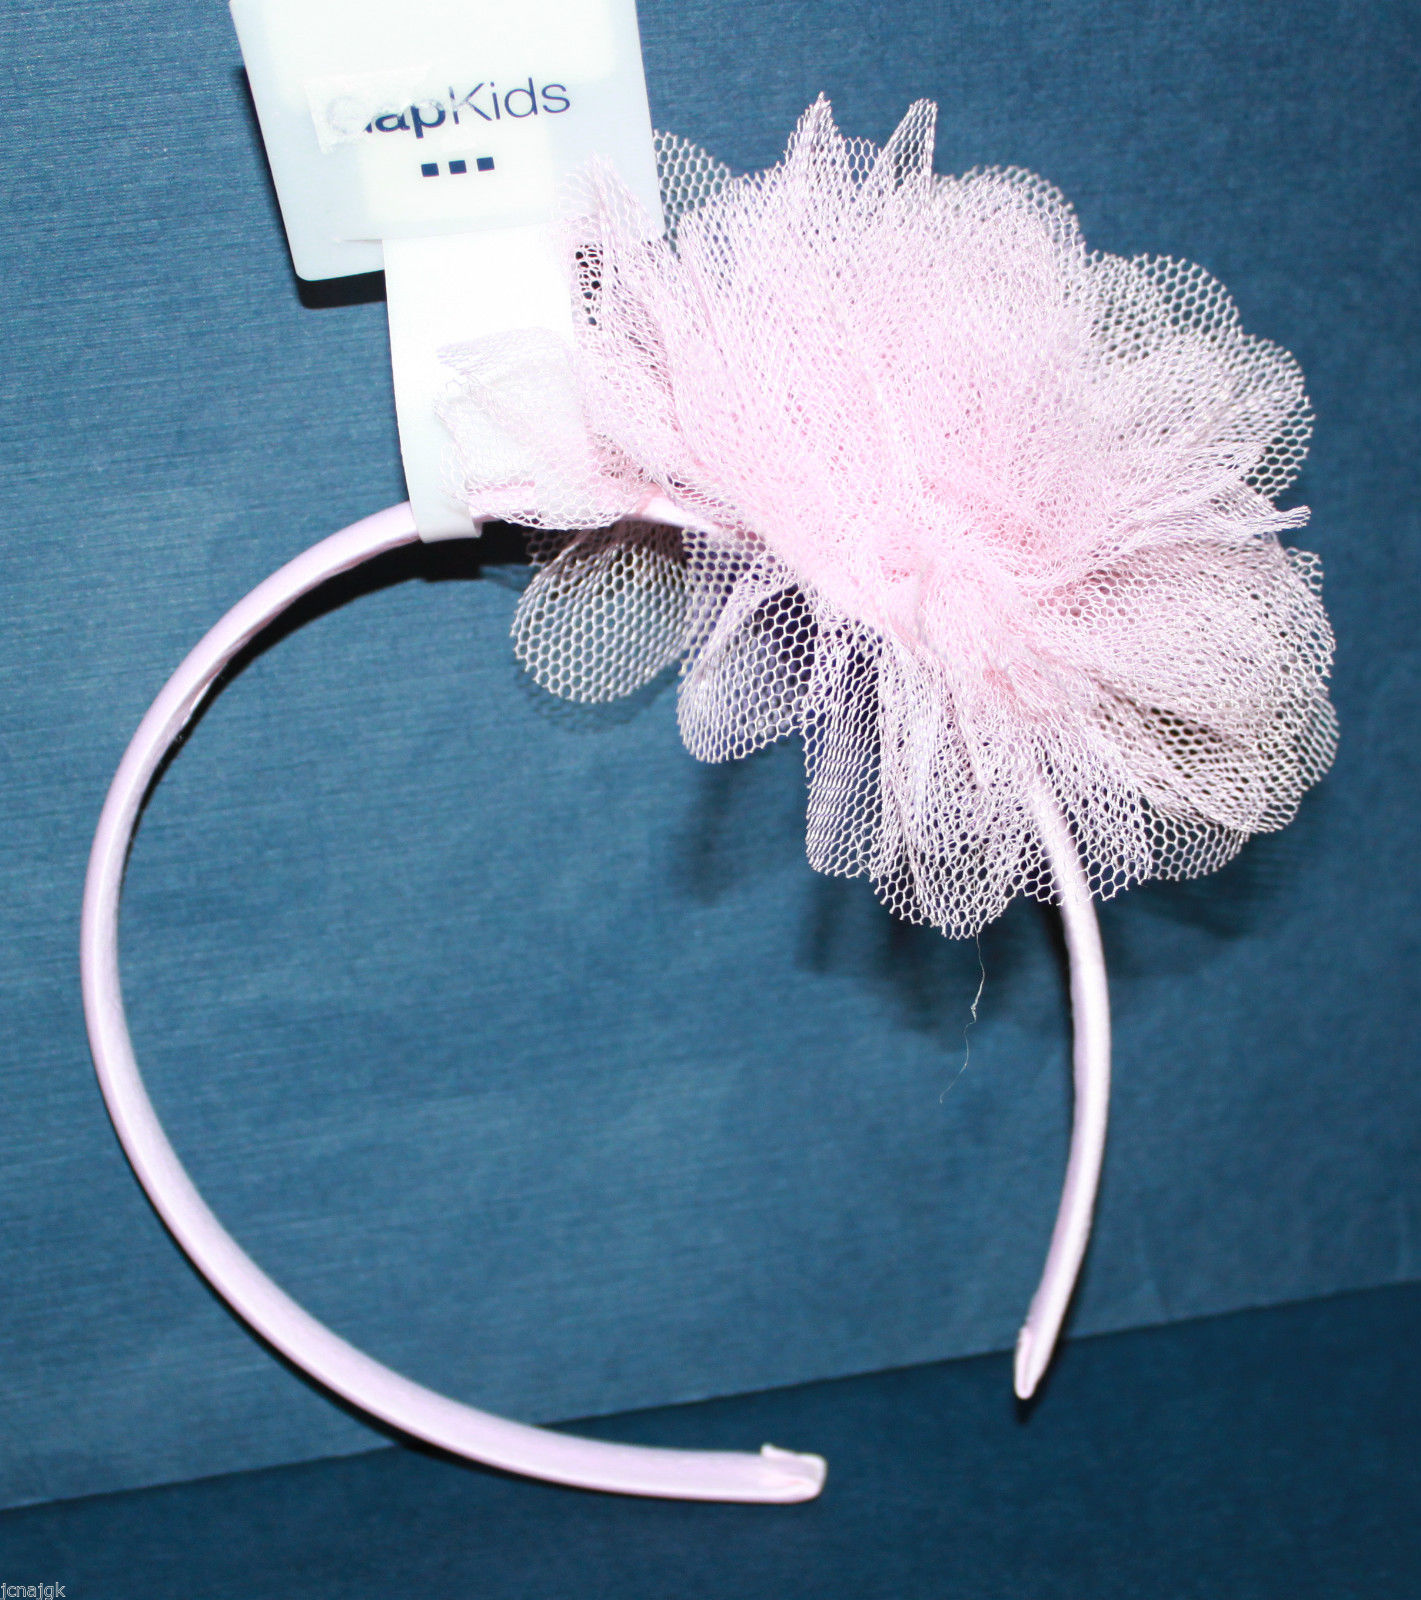 Gap Kids NWT Girl's Lt. Pink Headband w/ Tulle Puff Rosette - Fits ages 4-12 image 3